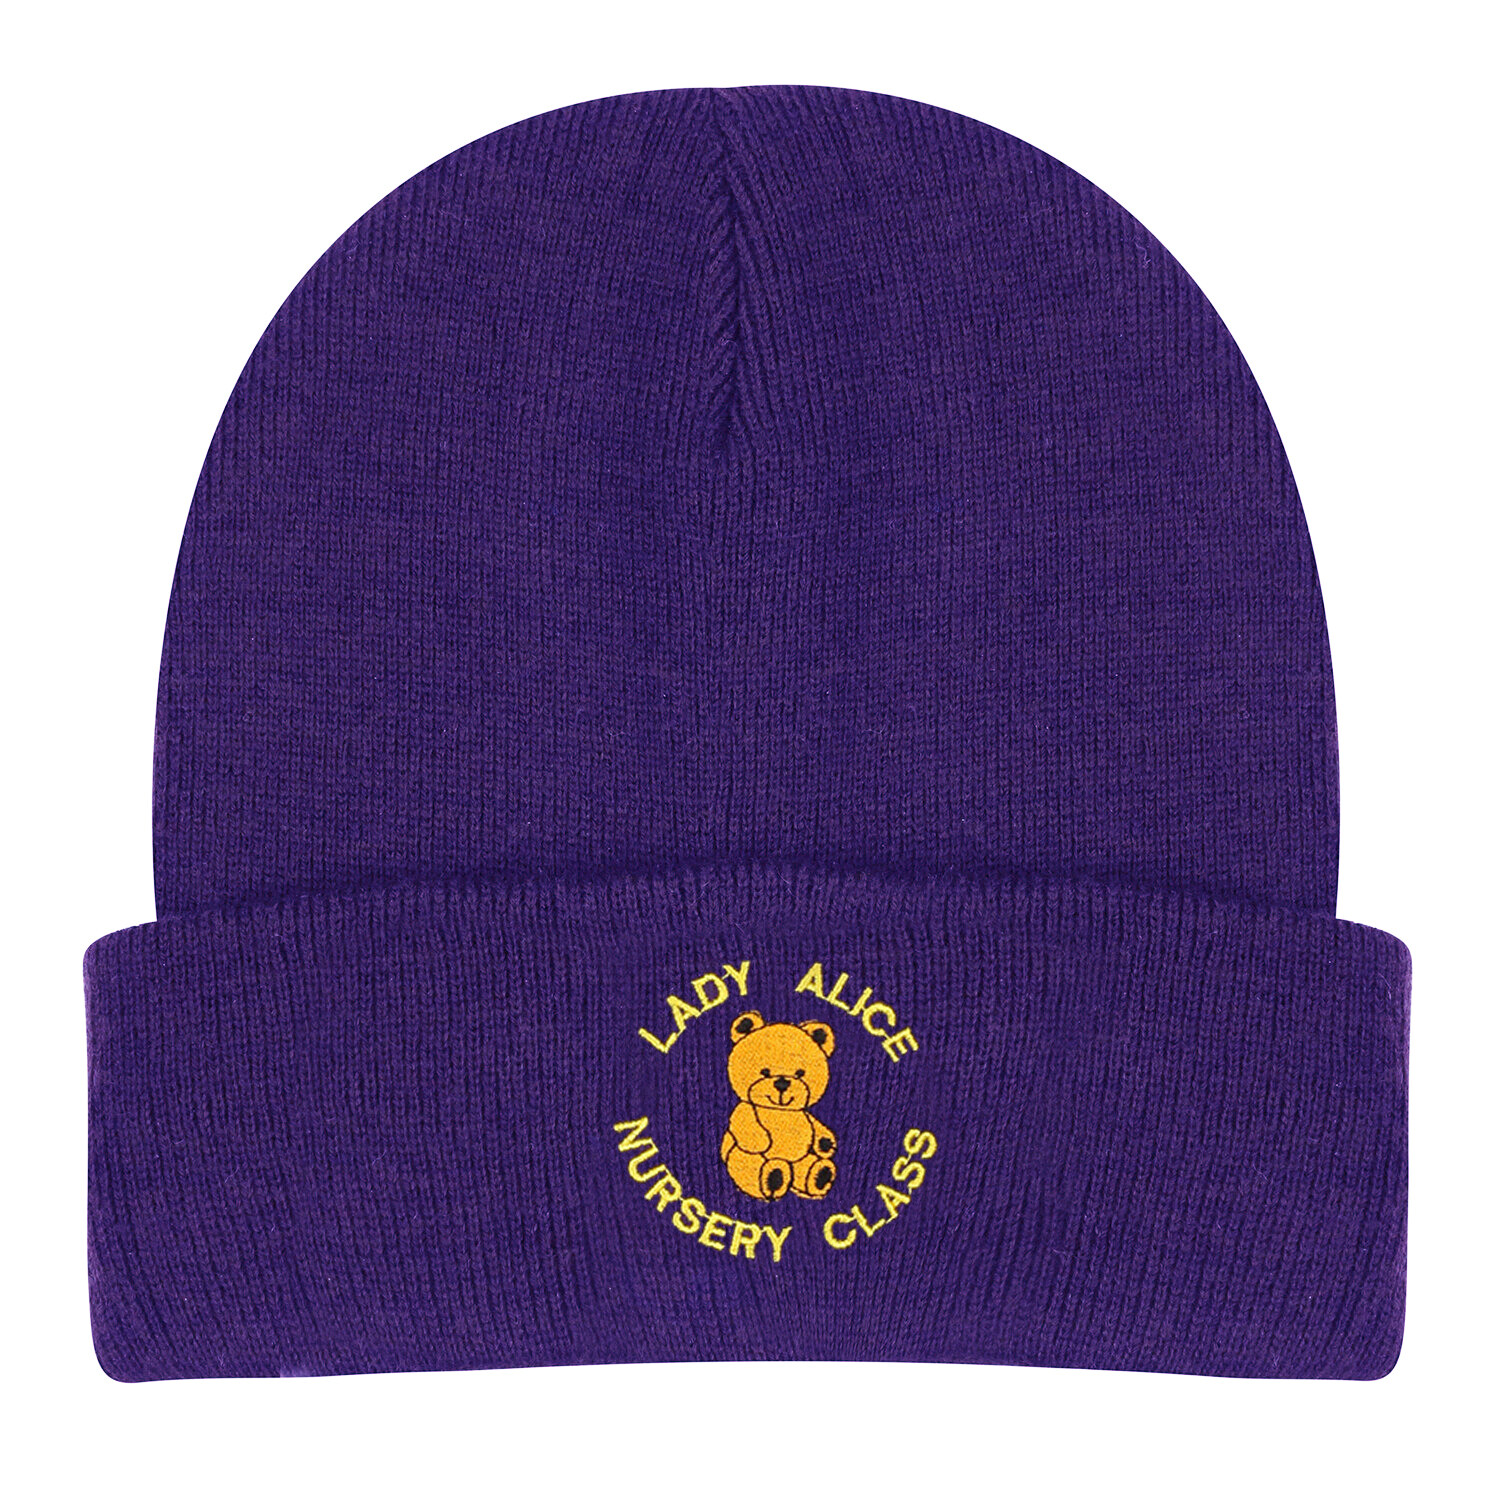 Lady Alice Nursery Staff Wooly Hat